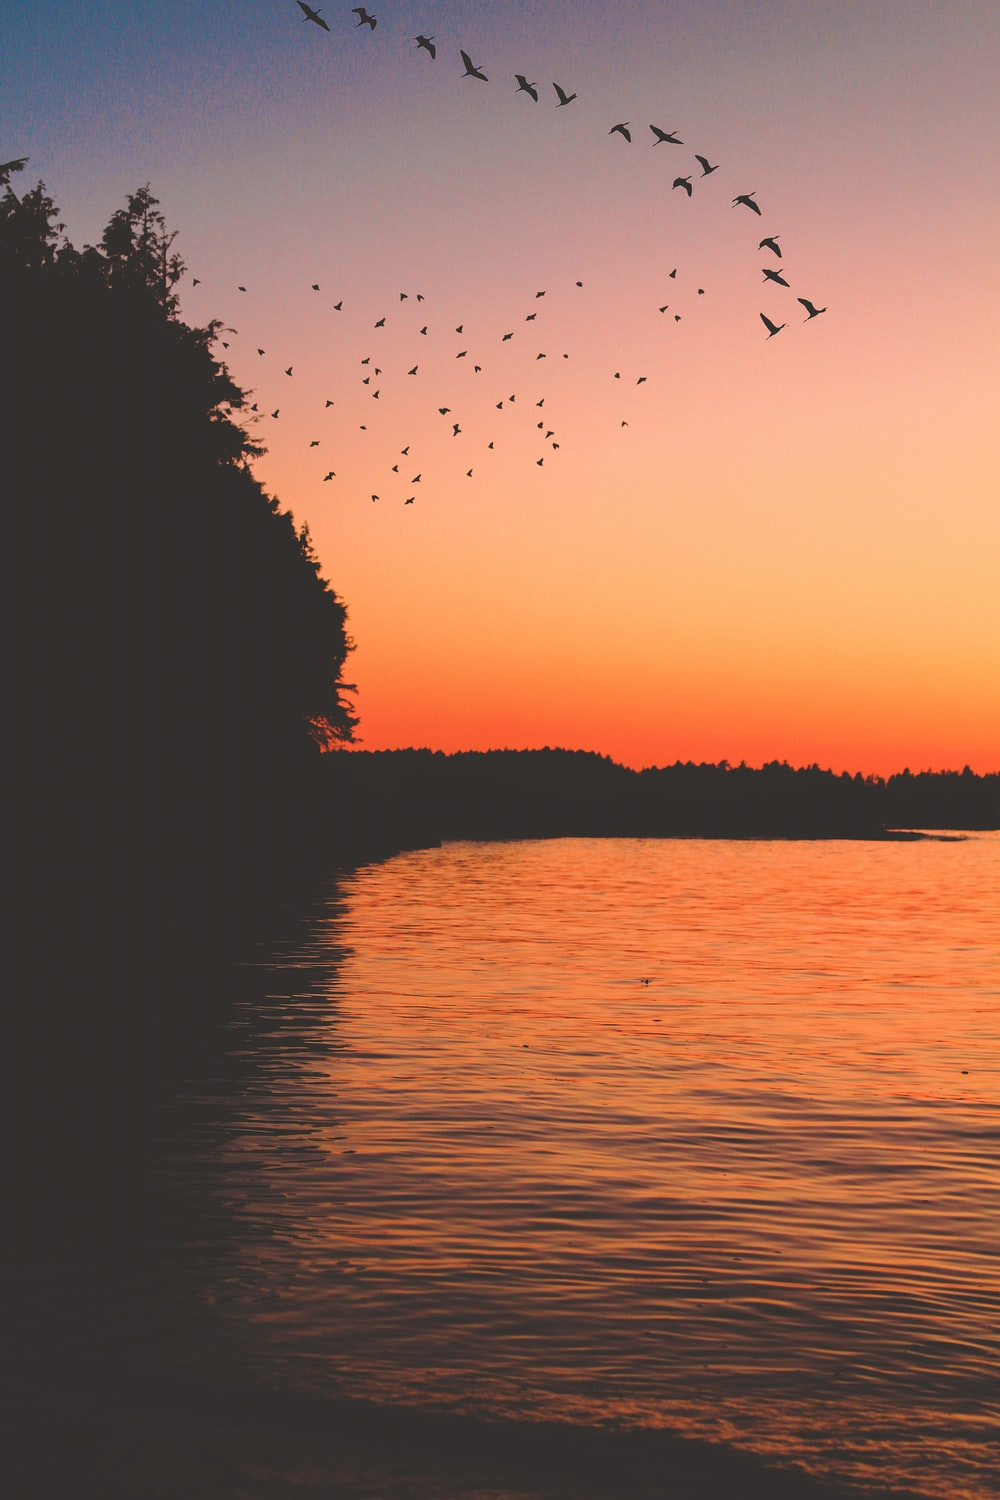 silhouette of birds flying over the lake during sunset